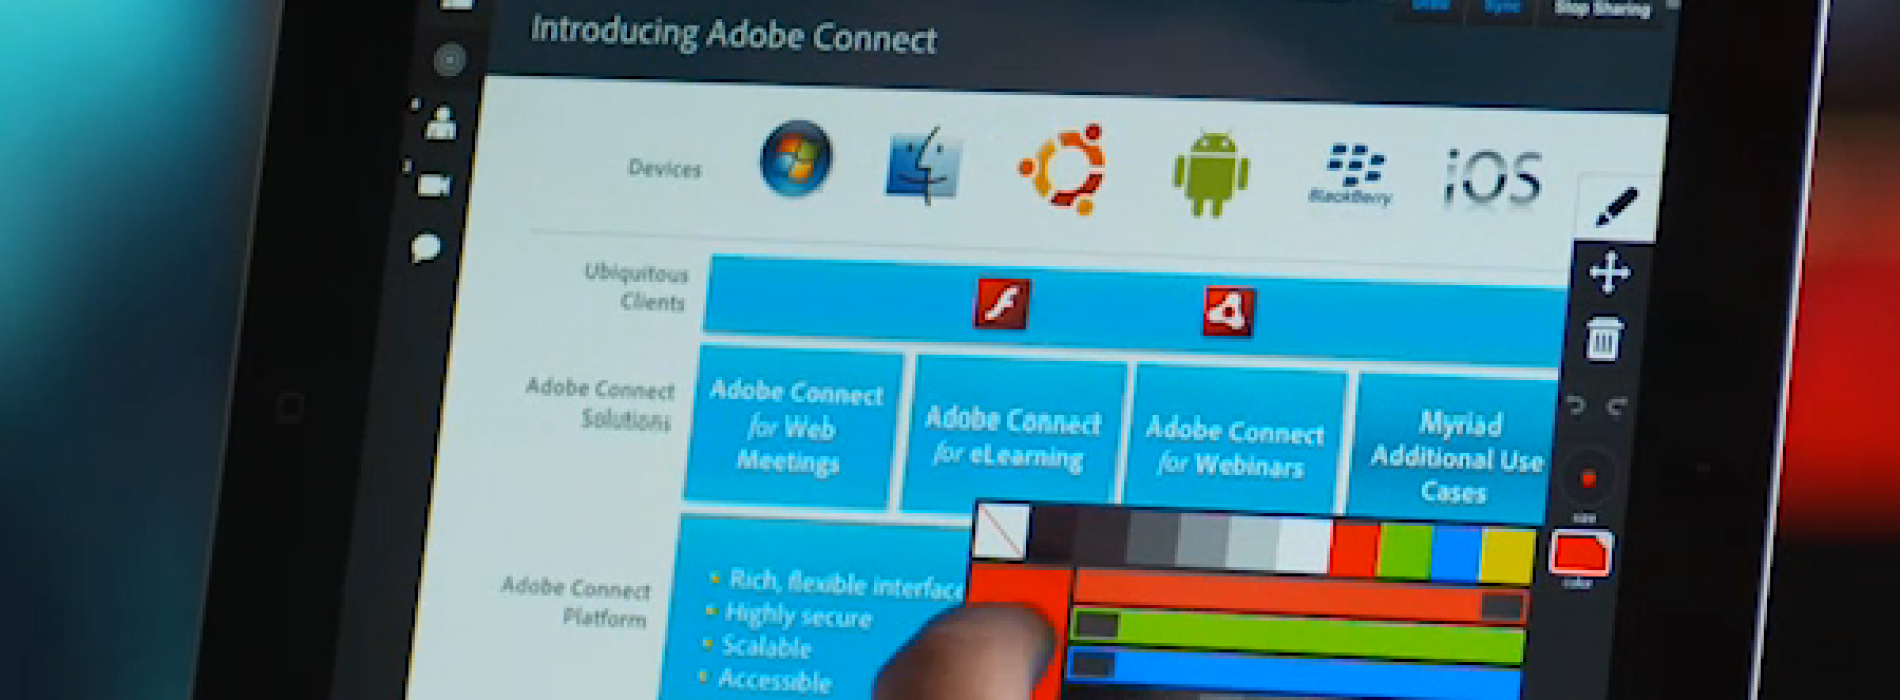 New Adobe Connect experience gives hosting, collaboration power to mobile